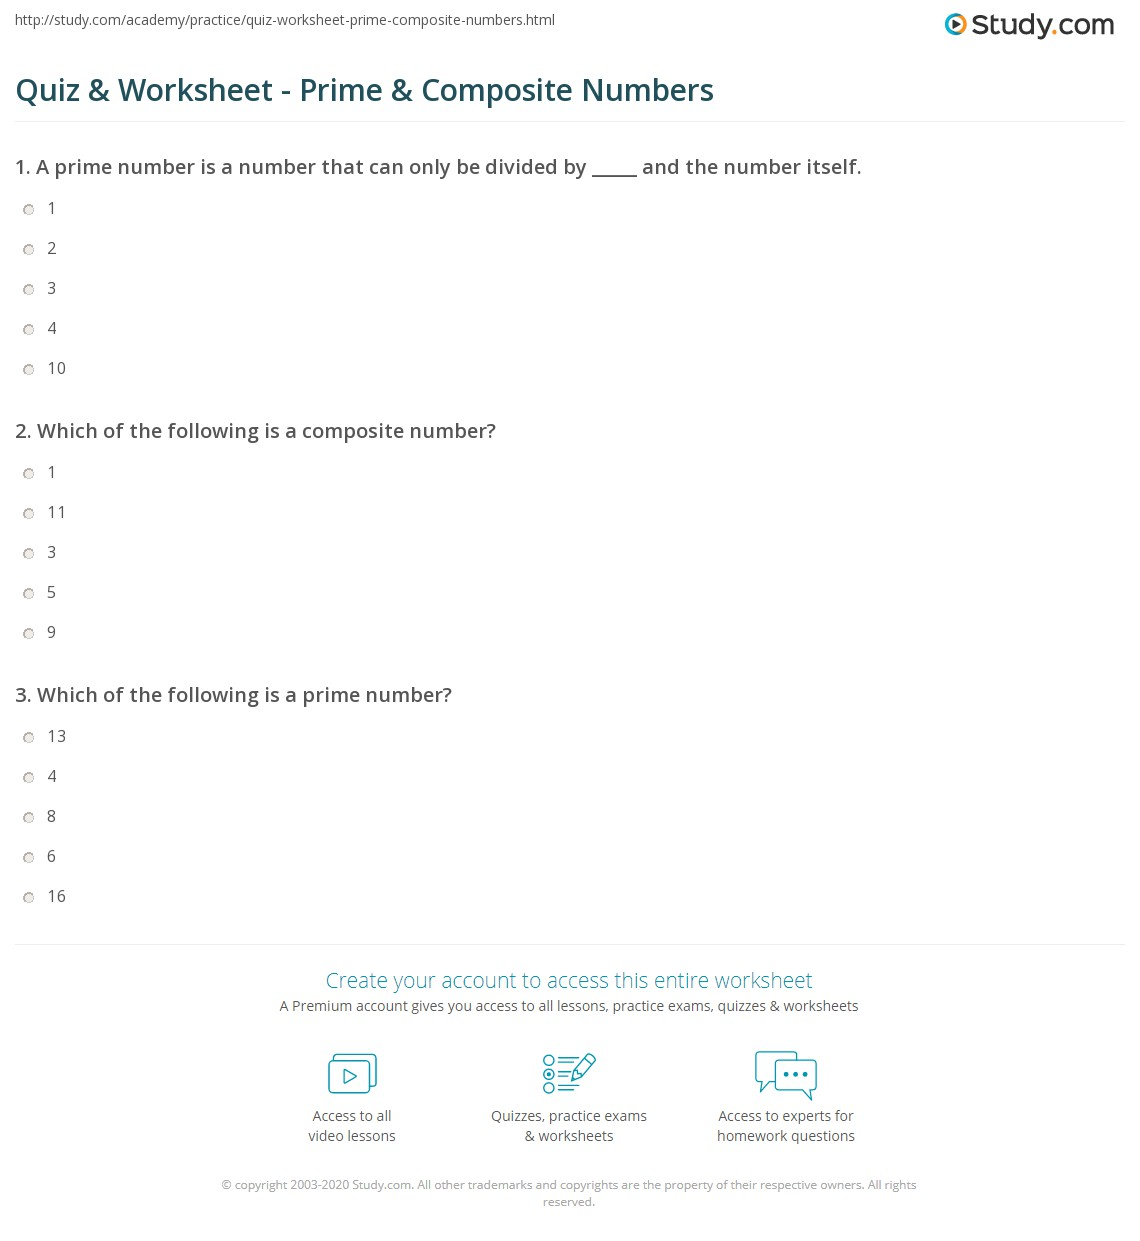 Quiz Worksheet Prime Composite Numbers Study